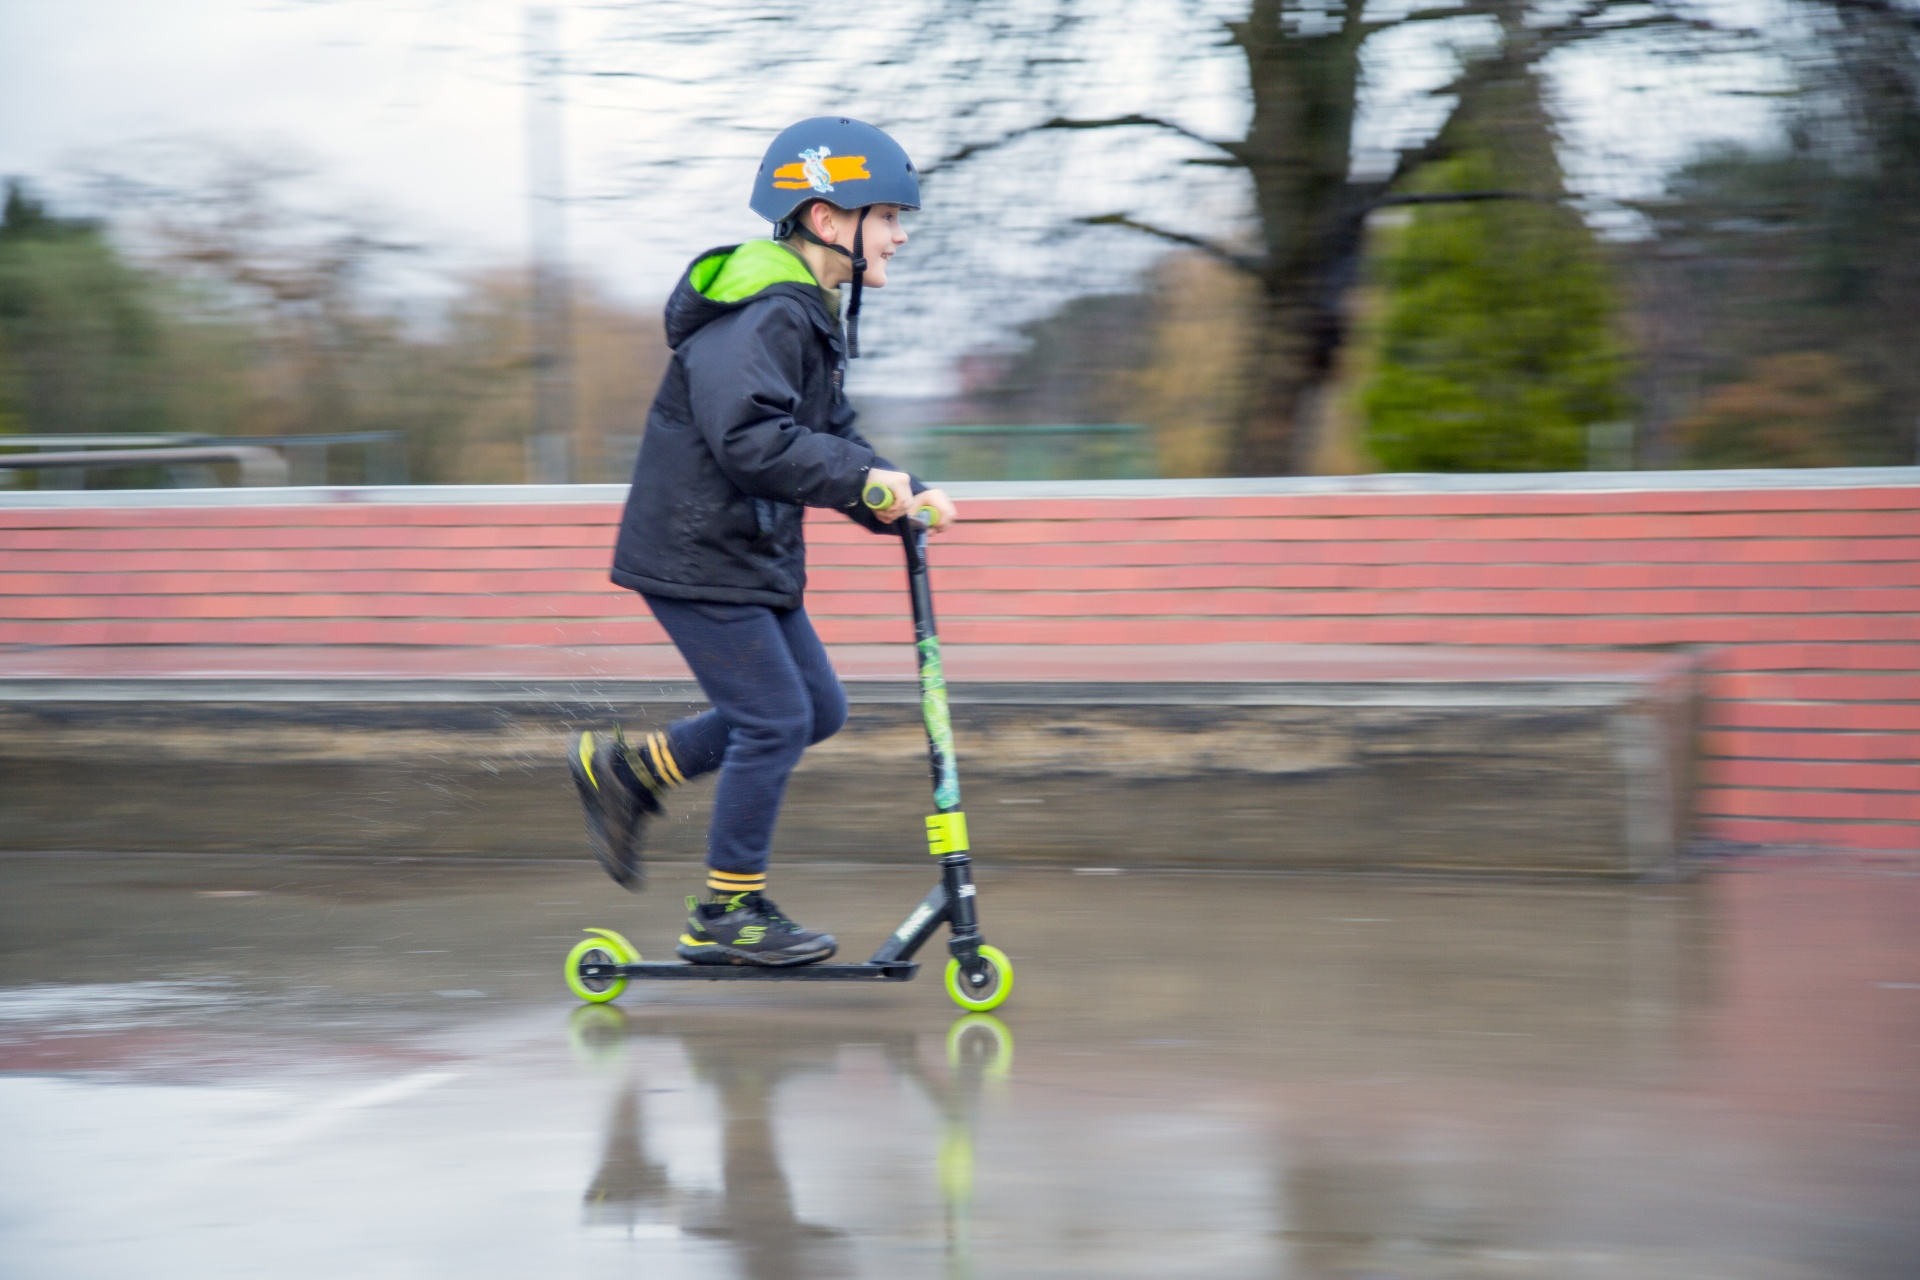 mejor-patinete-scooter